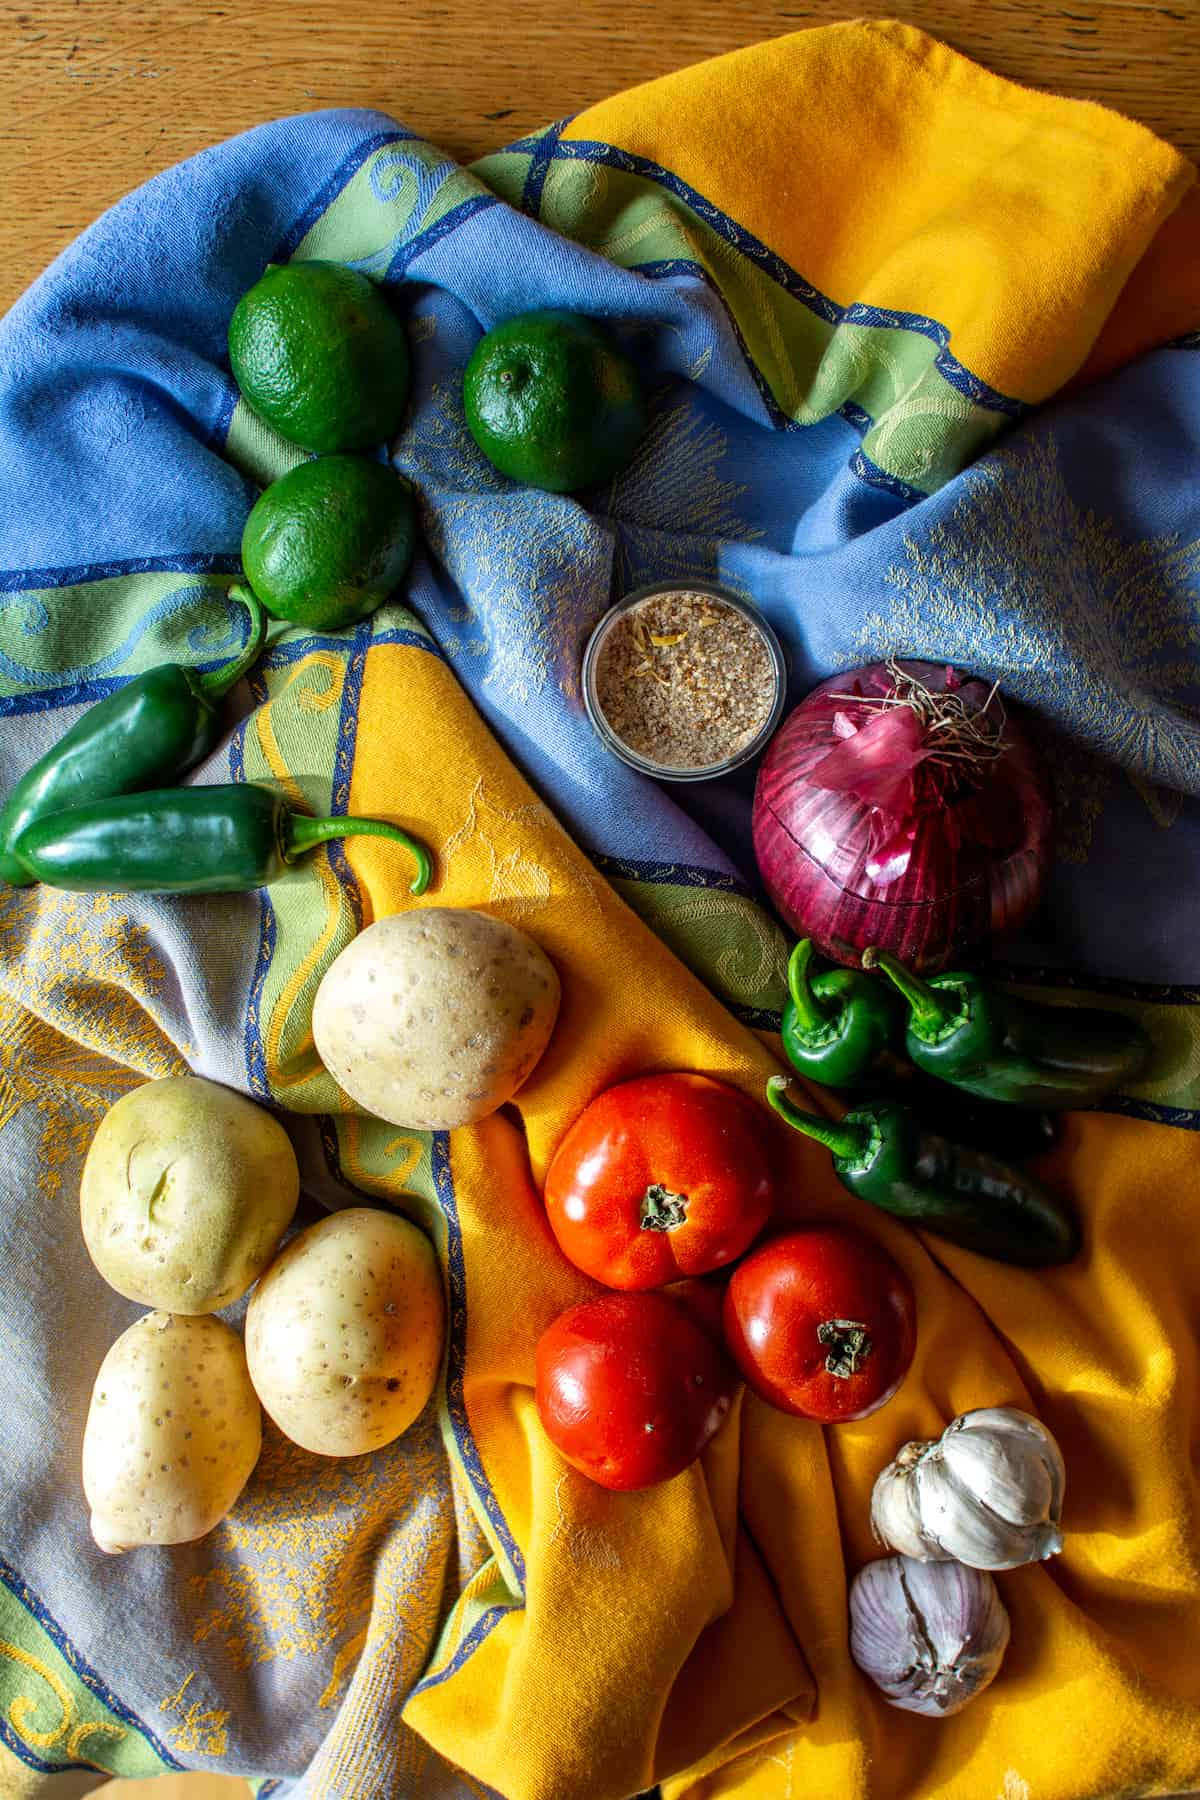 Ingredients to make Papas con Chile including potatoes, jalapeños, limes, salt, red onion, garlic, and tomatoes spread on a cloth.